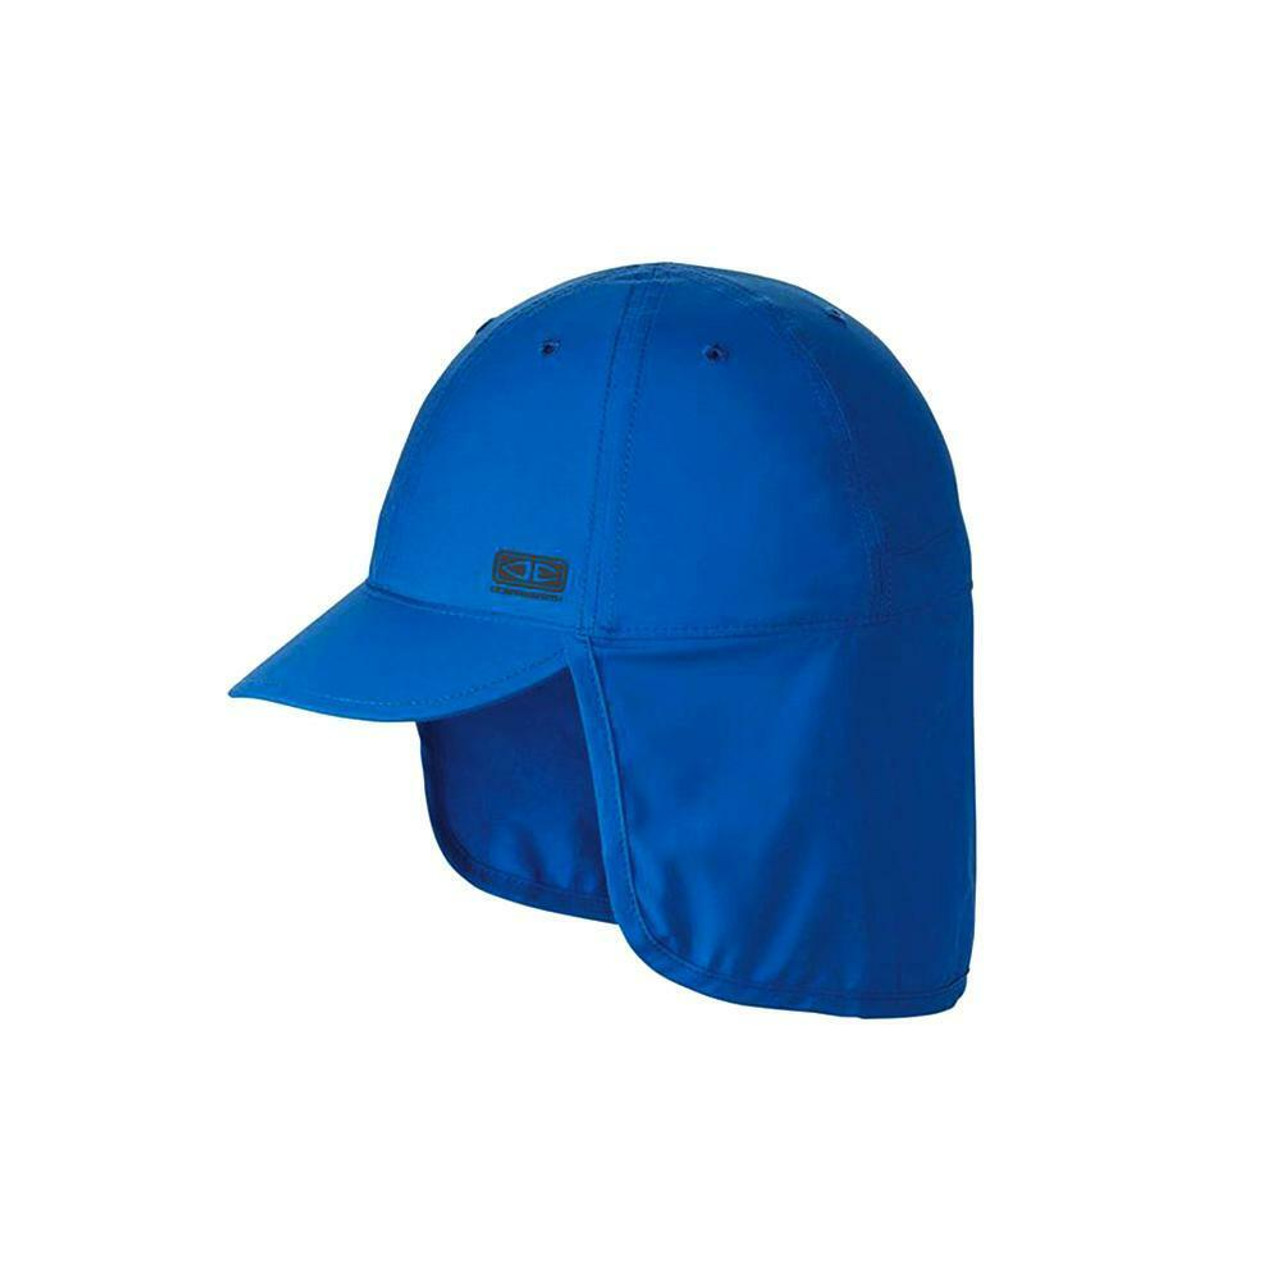 Ocean /& Earth Kids Indo Surf Hat For Surfing /& Outdoor Activity/'s